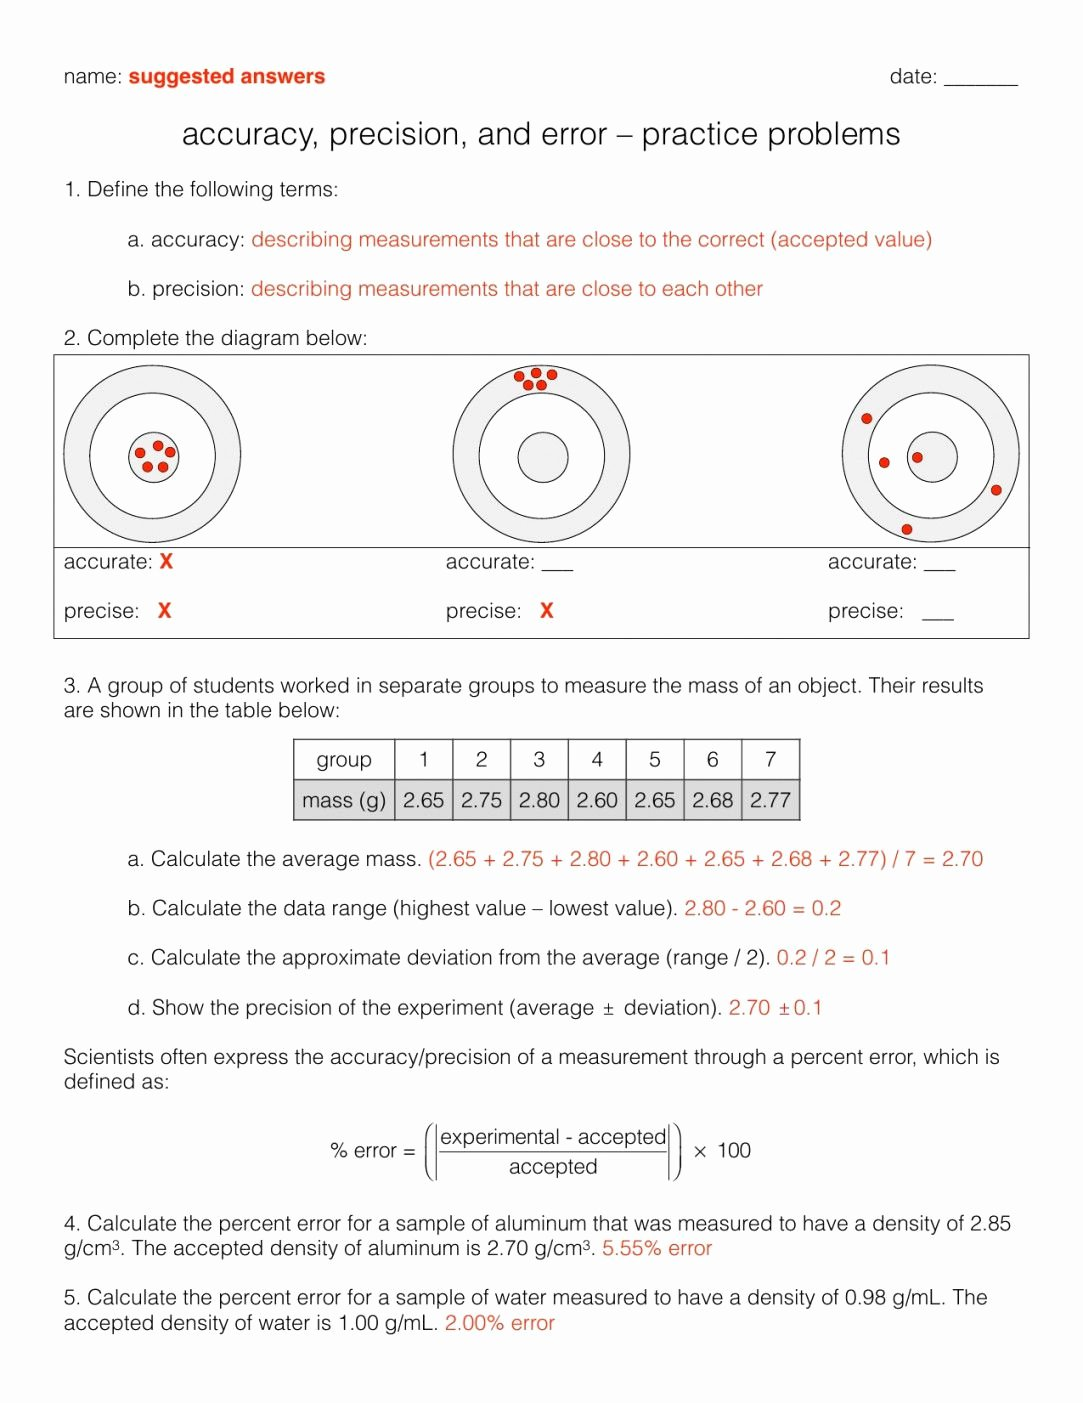 Accuracy and Precision Worksheet Answers Inspirational Preschool Worksheets Accuracy and Precision Worksheet